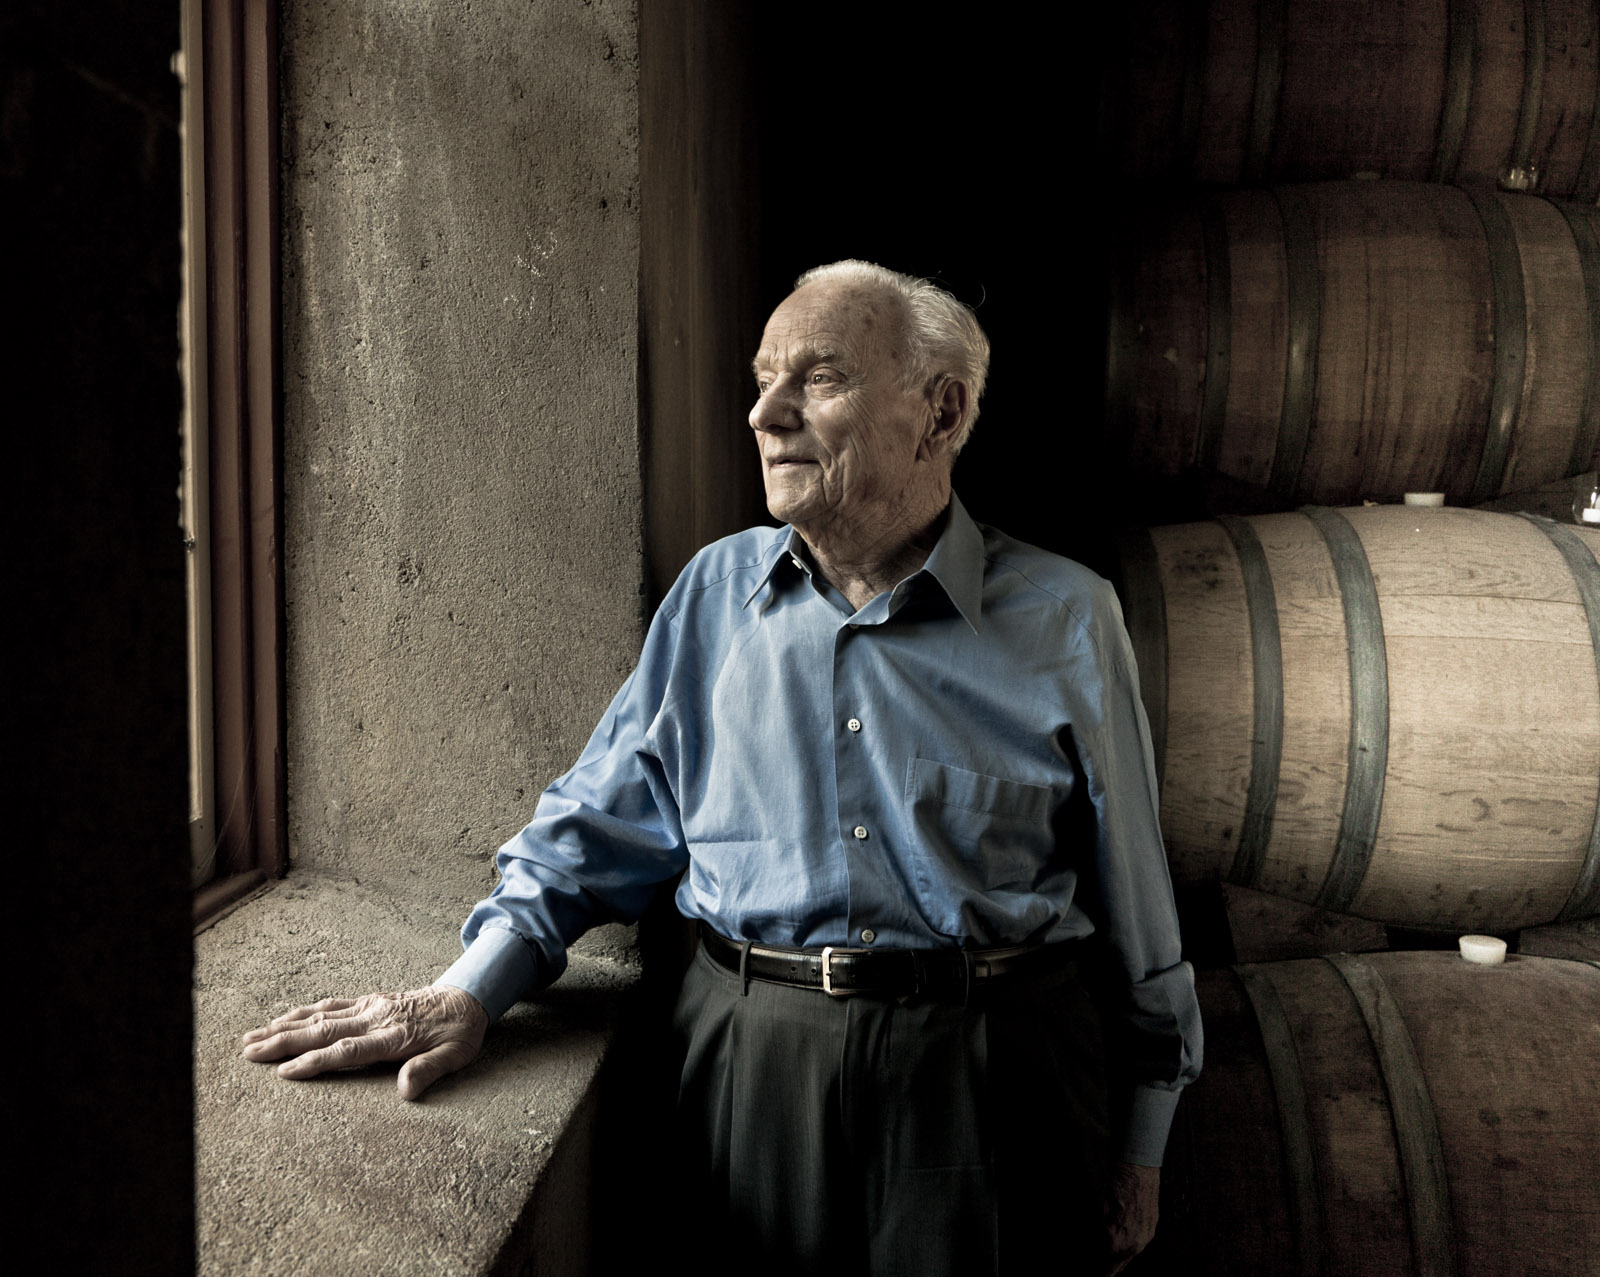 Peter Mondavi at the Red Cellar: Rocco Studio Photography